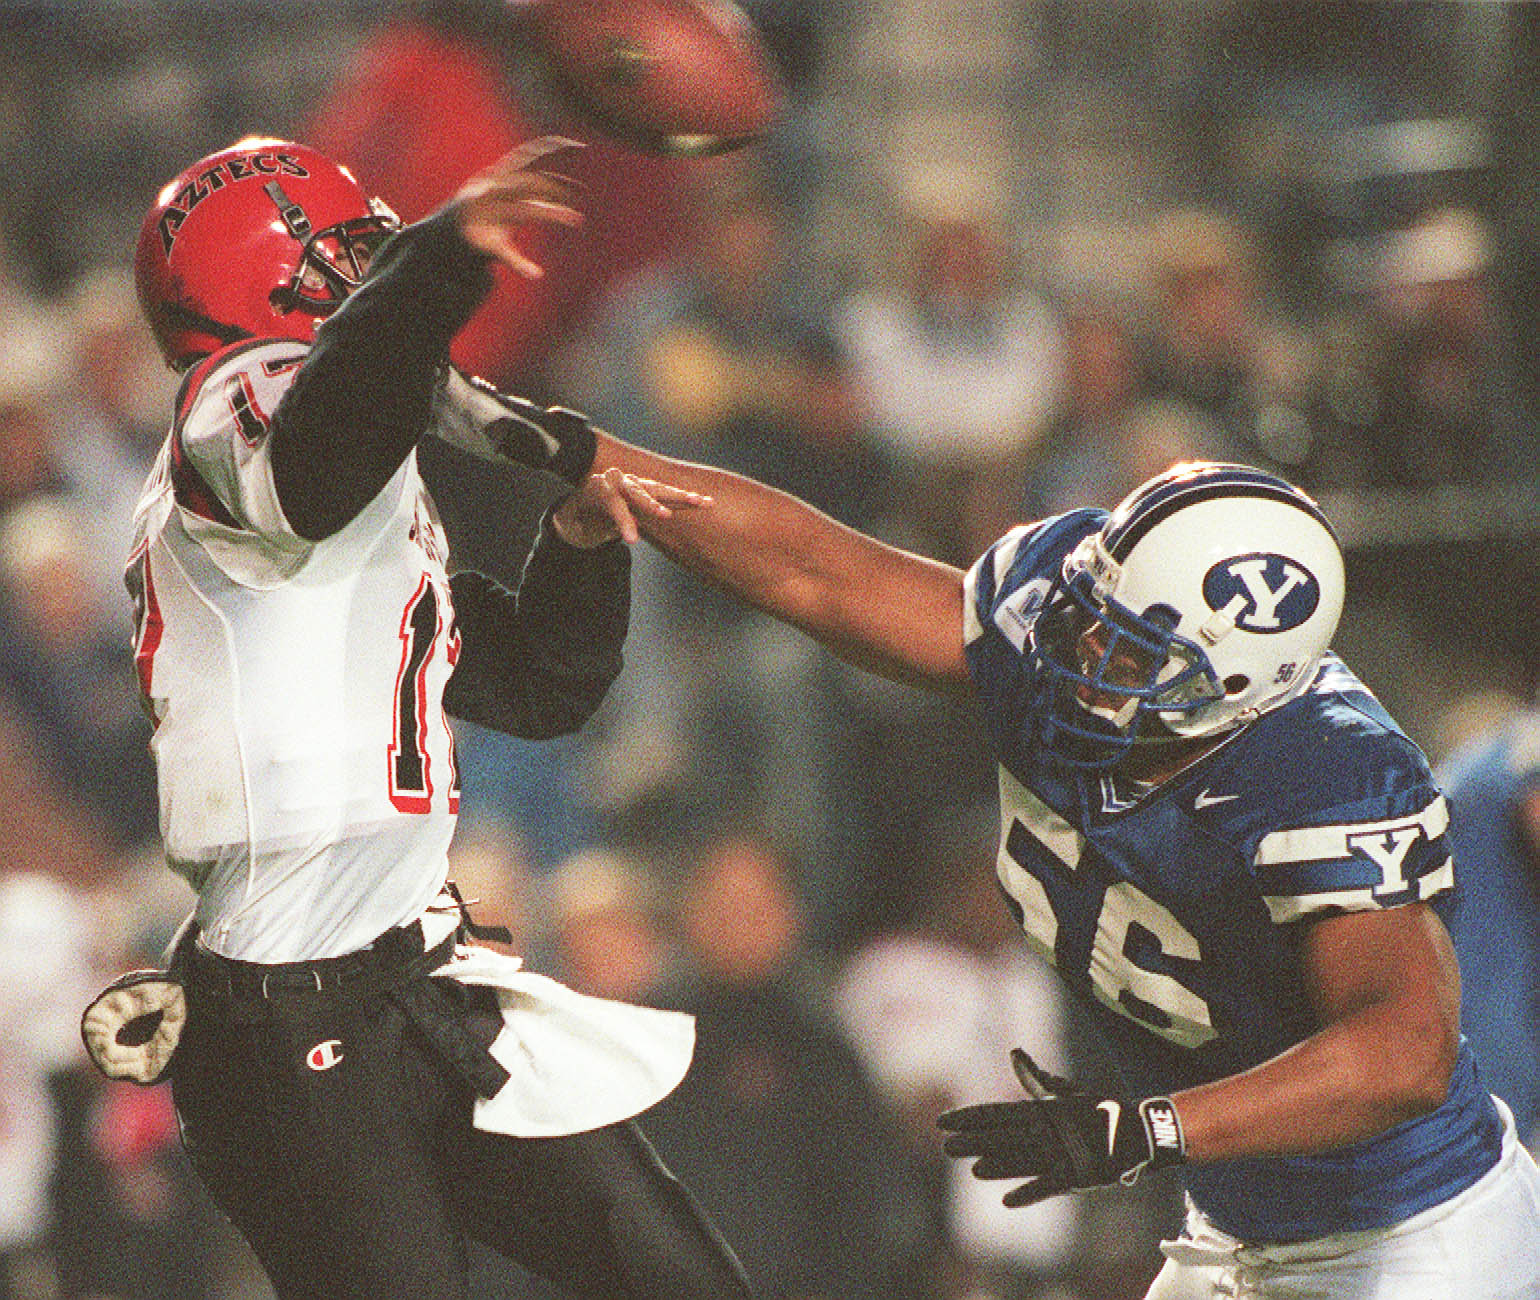 BYU's Ed Kehl hurries San Diego State QB Brian Russell to help cause an incompletion during a game in 1998.